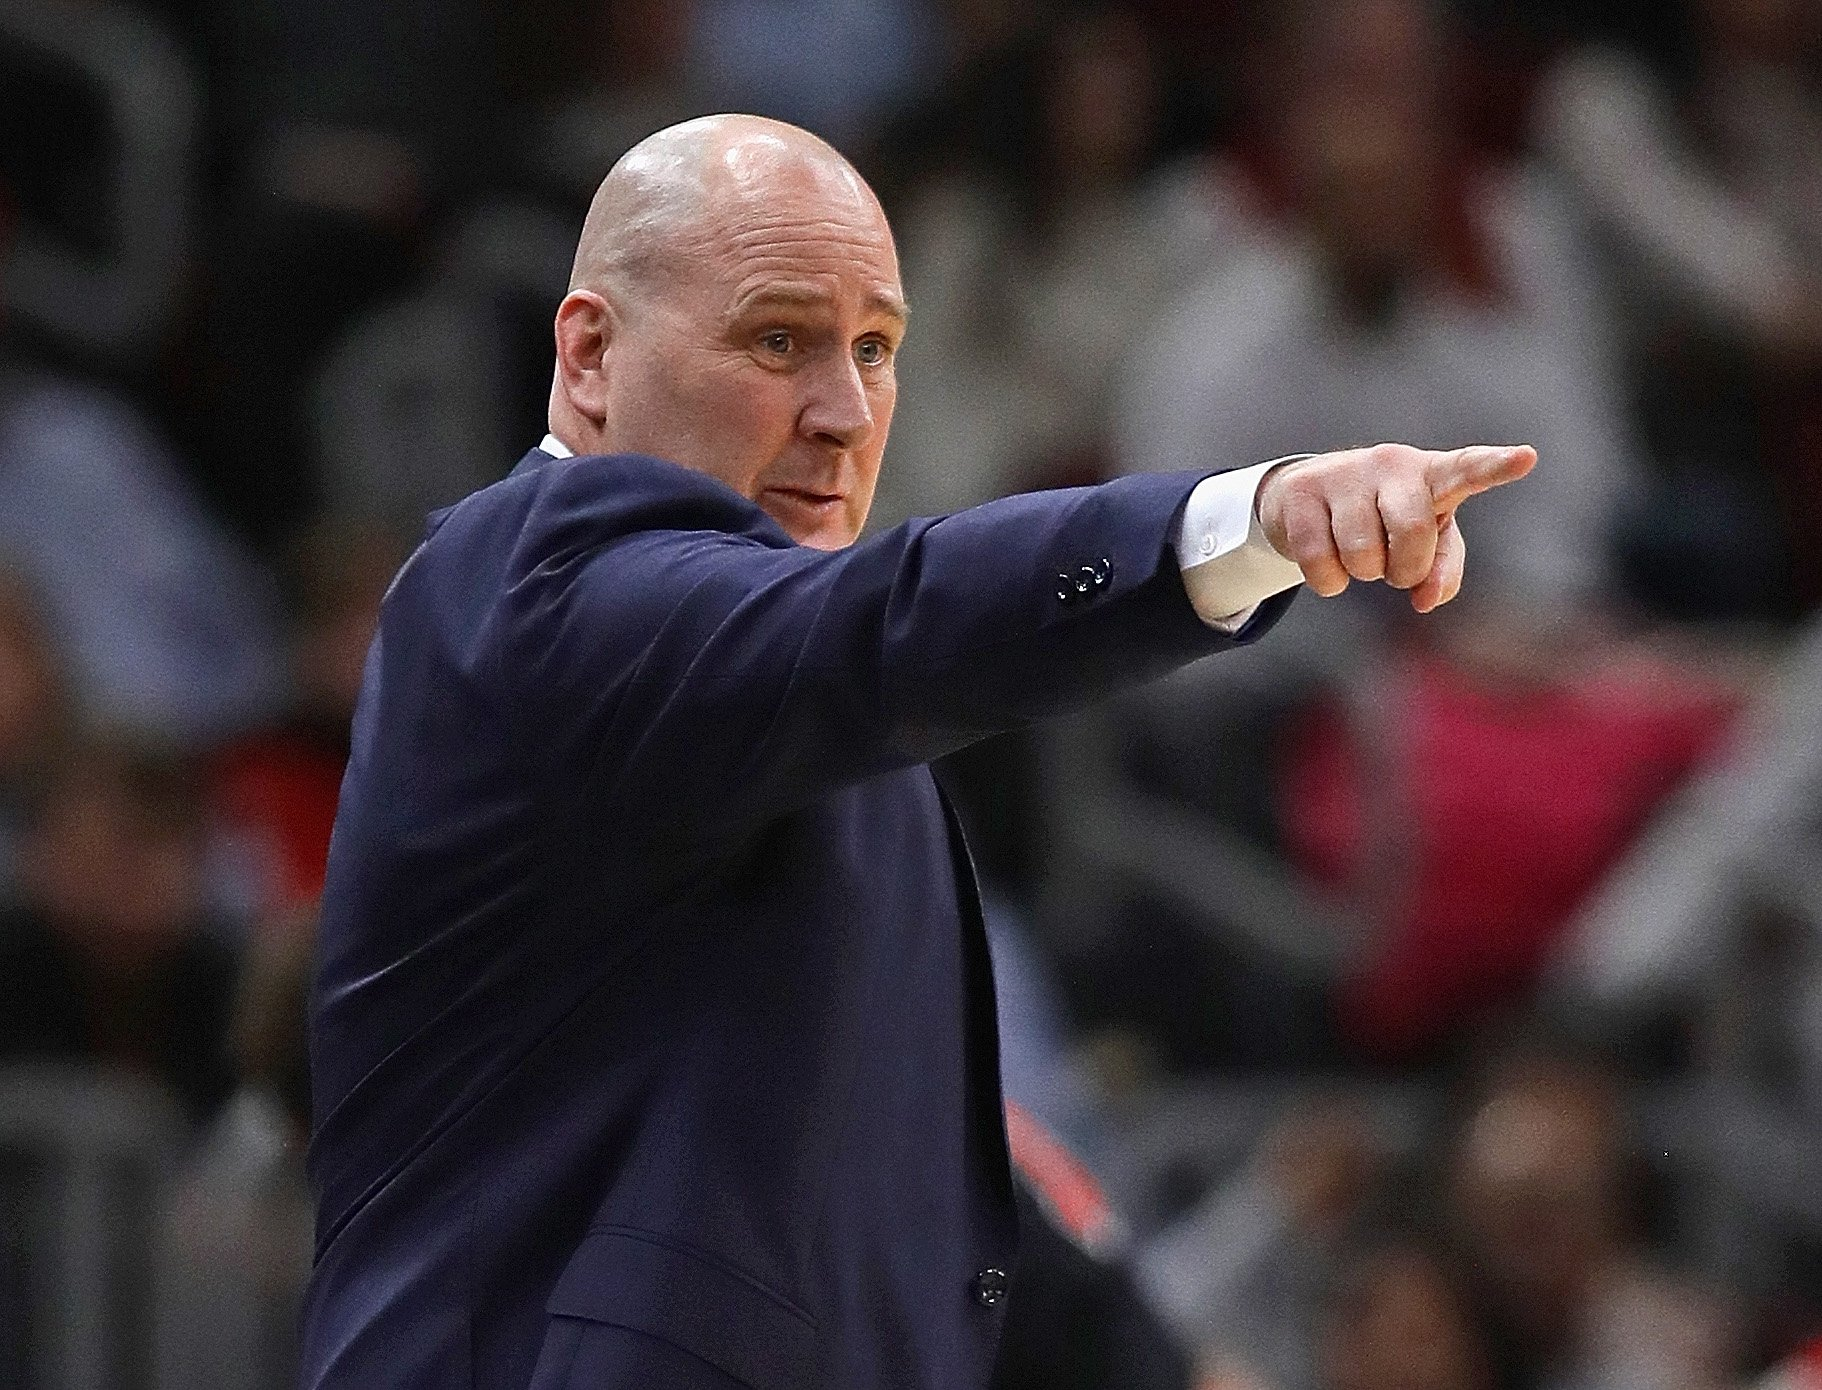 Chicago Bulls fire head coach Jim Boylen after two losing seasons